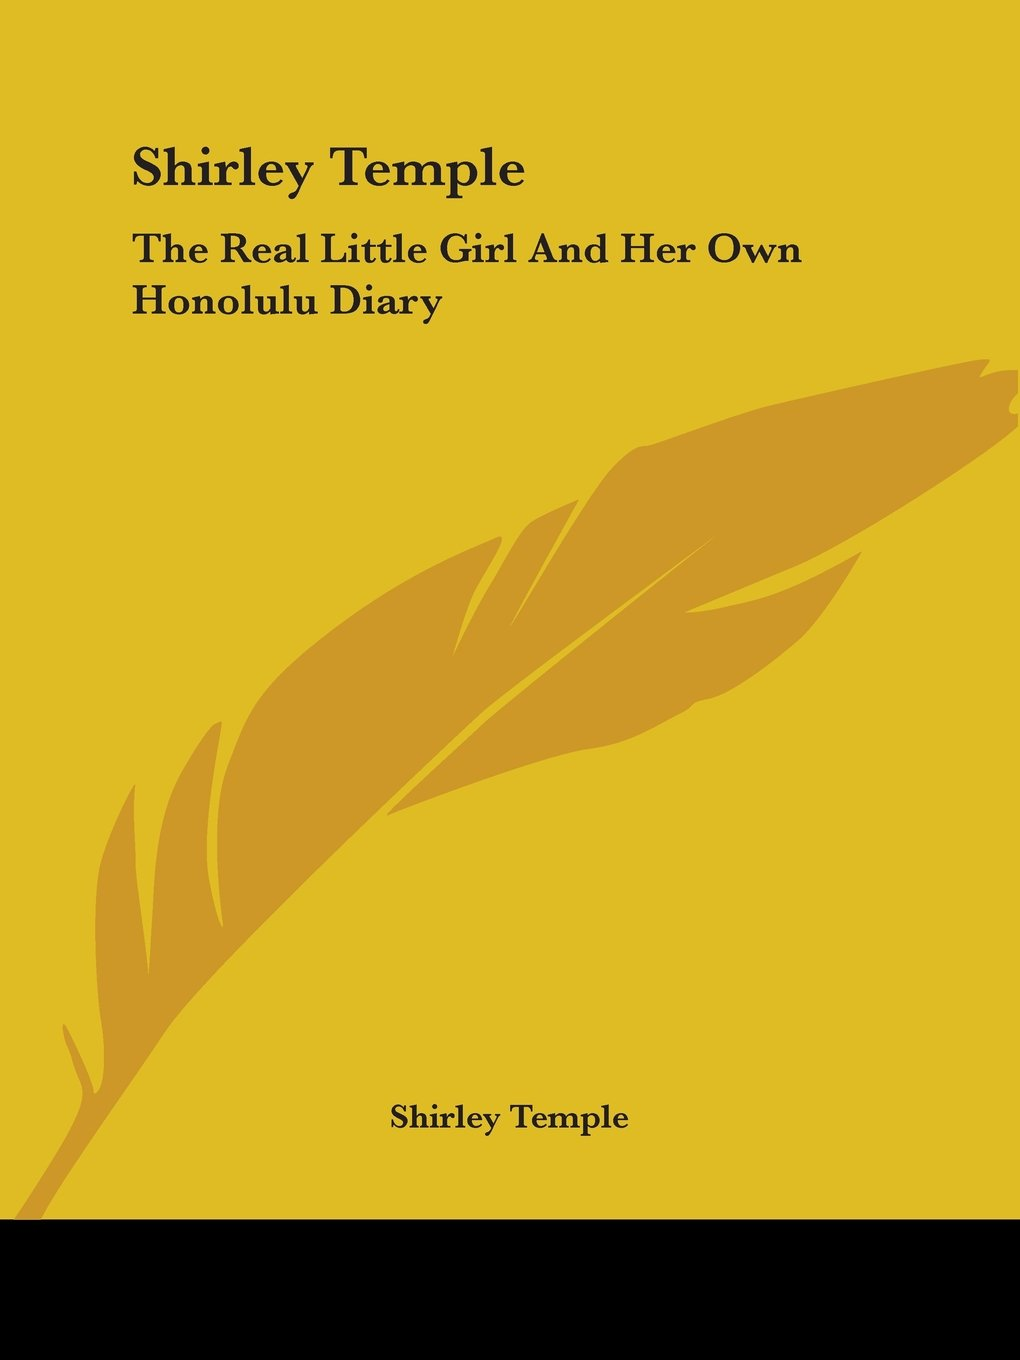 Shirley Temple: The Real Little Girl And Her Own Honolulu Diary Paperback –  March 1, 2007